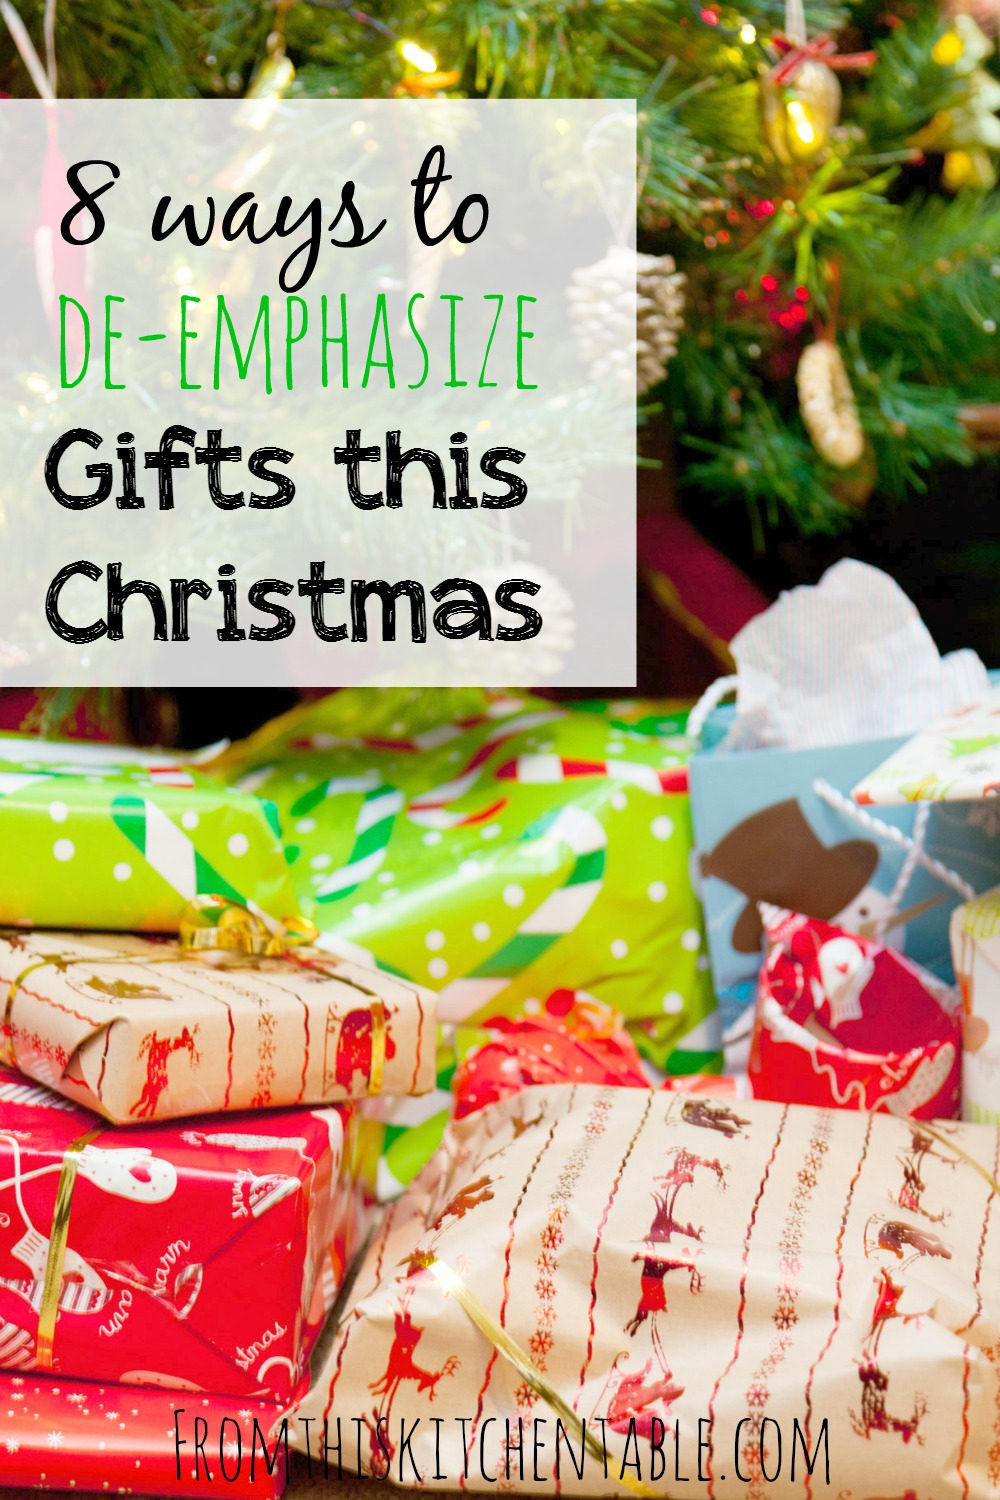 Is it Christmas without piles of presents under the tree? These are 8 great ideas to help your family take the emphasis off of gifts. Need to read this for this year!